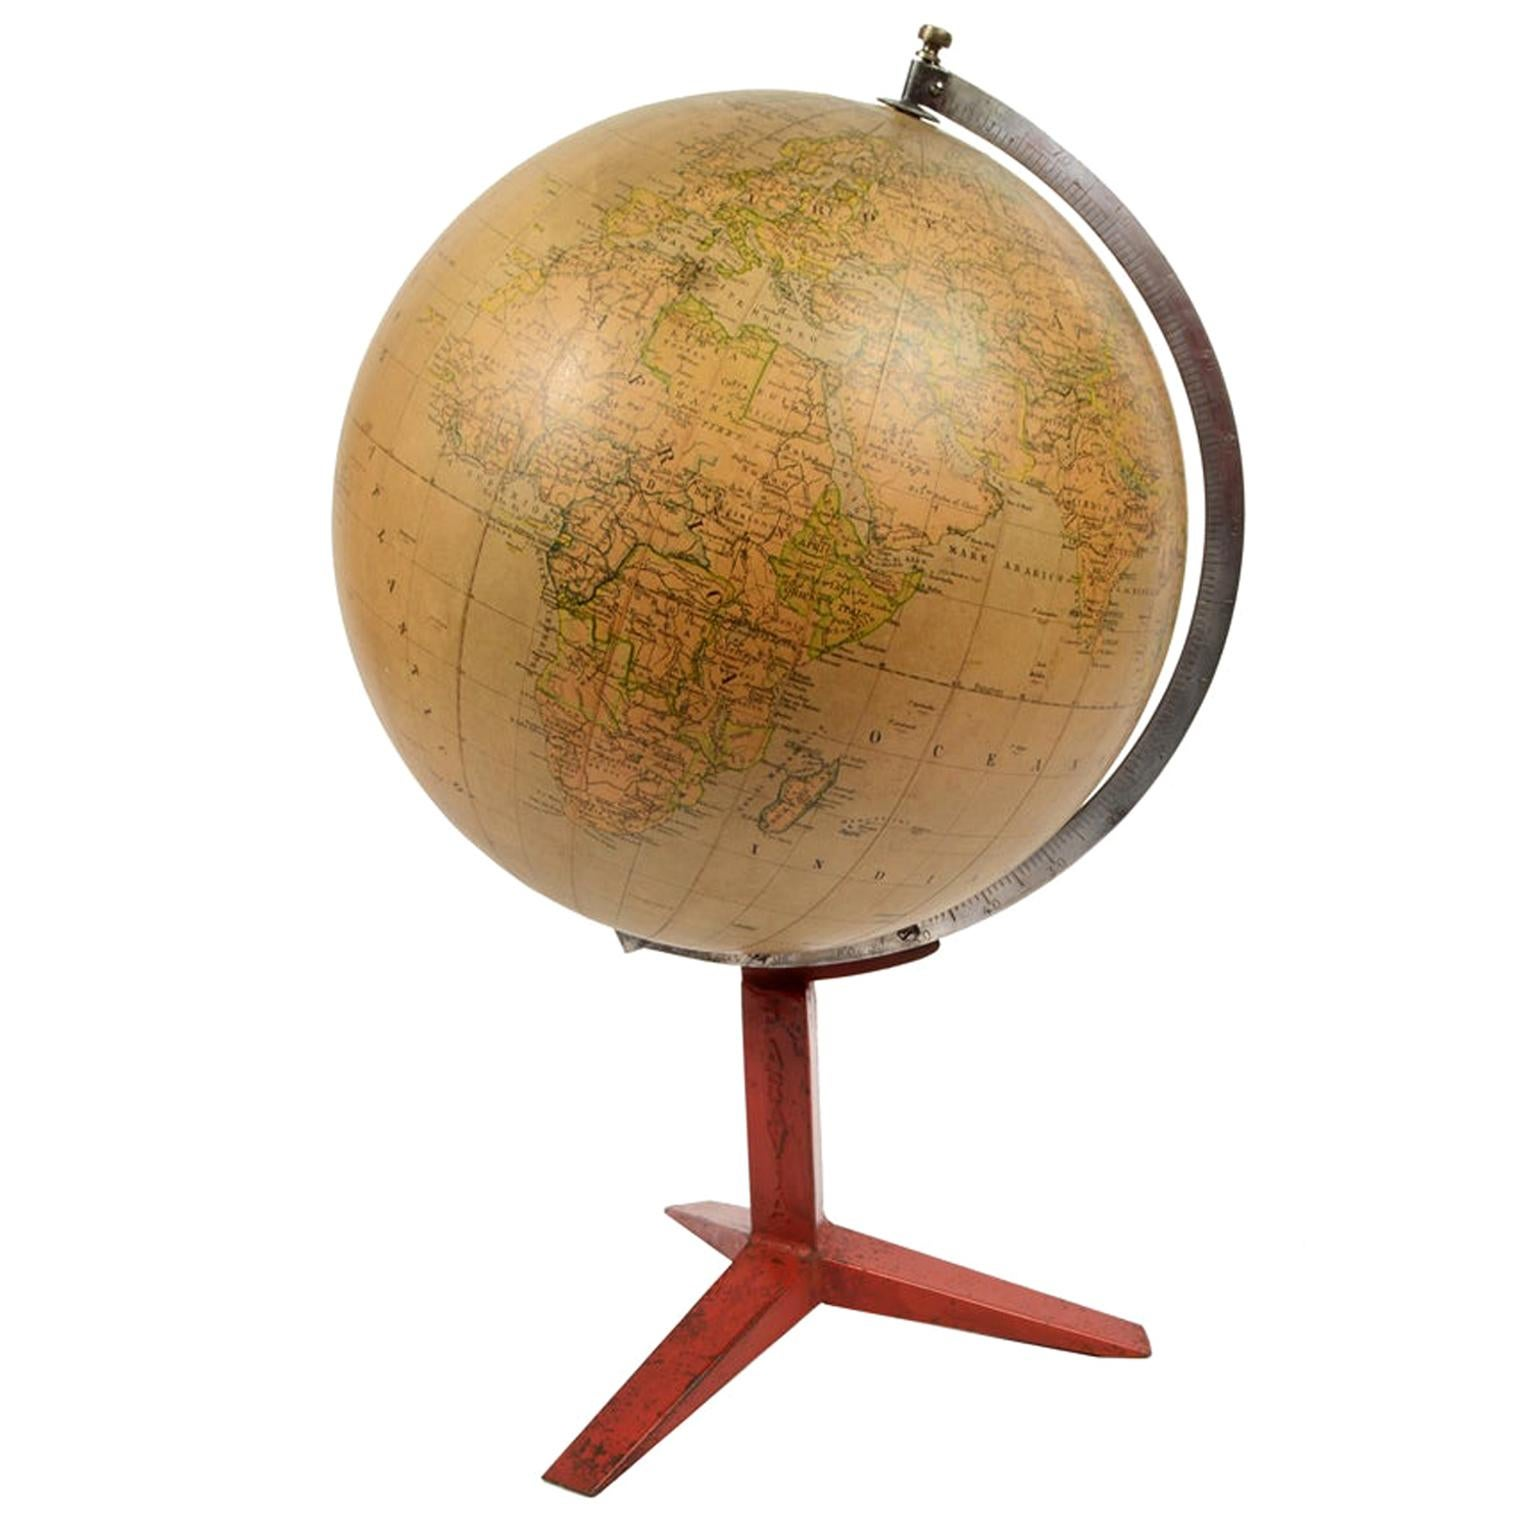 1940s-1950s Vintage Italian Terrestrial Globe with Metal Base By Paravia Turin